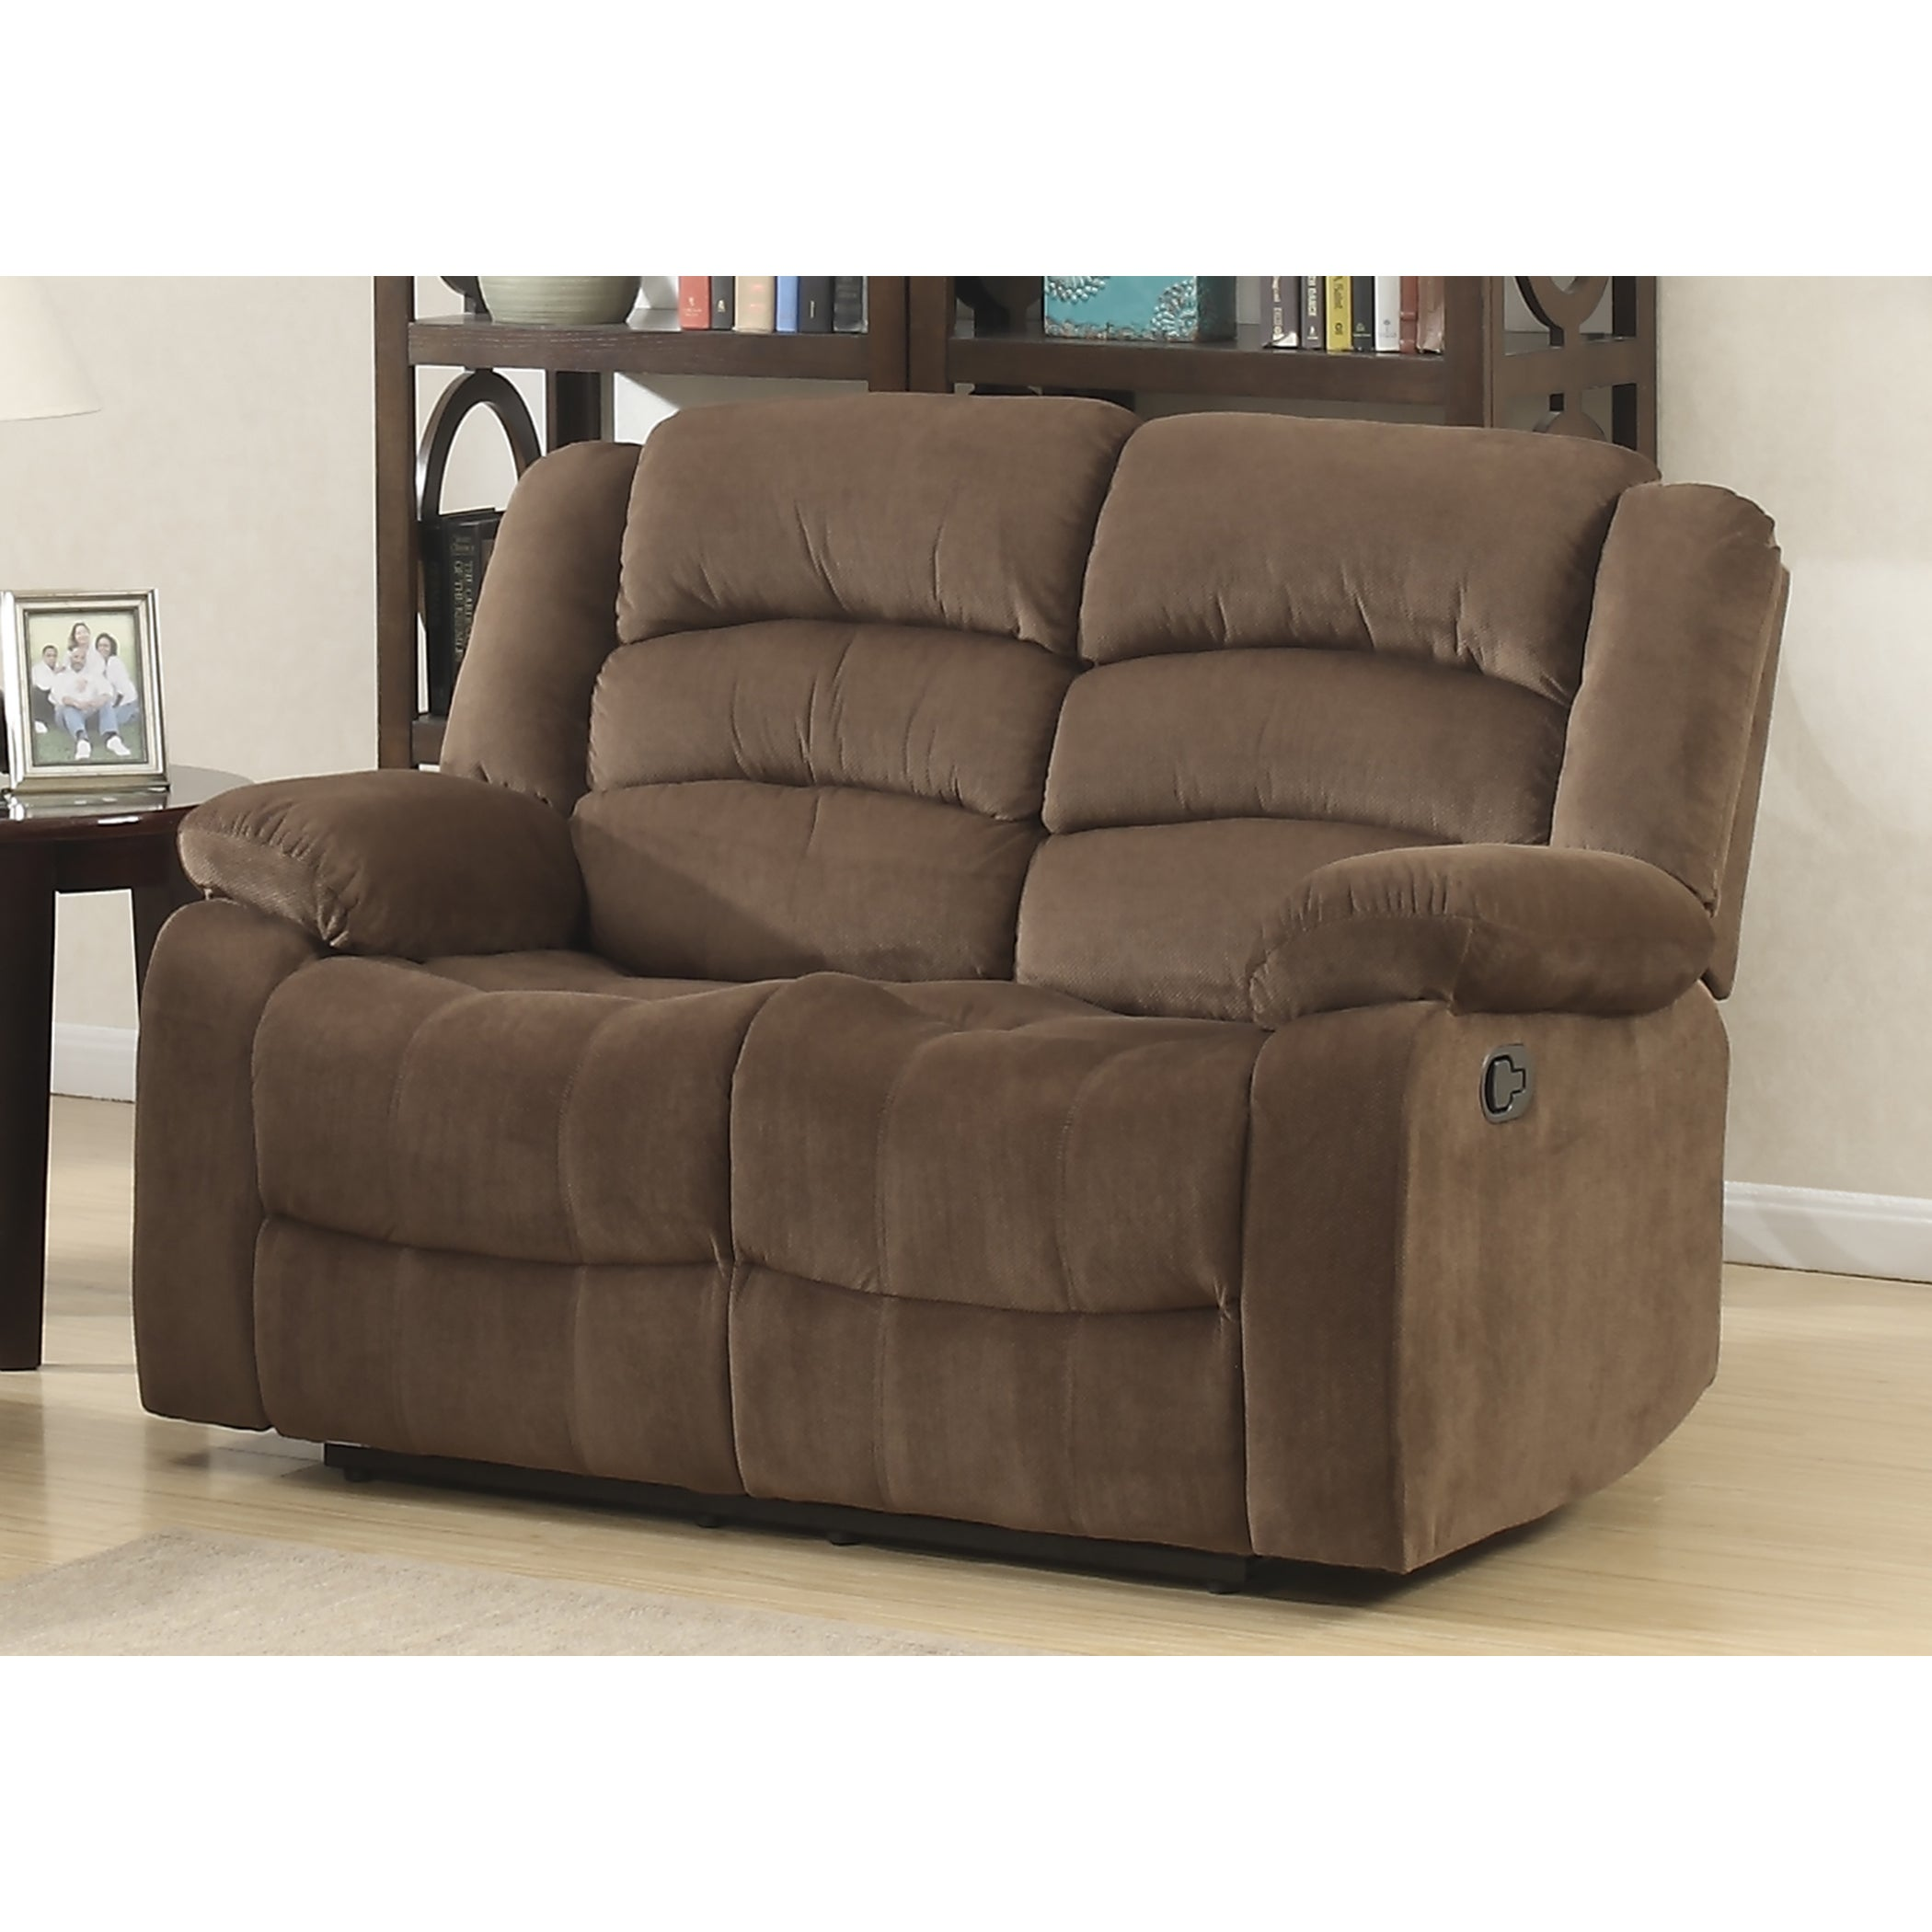 Details About Double Recliner Chair Dual Reclining Loveseat Polyester Soft Brown Comfy Tv Room